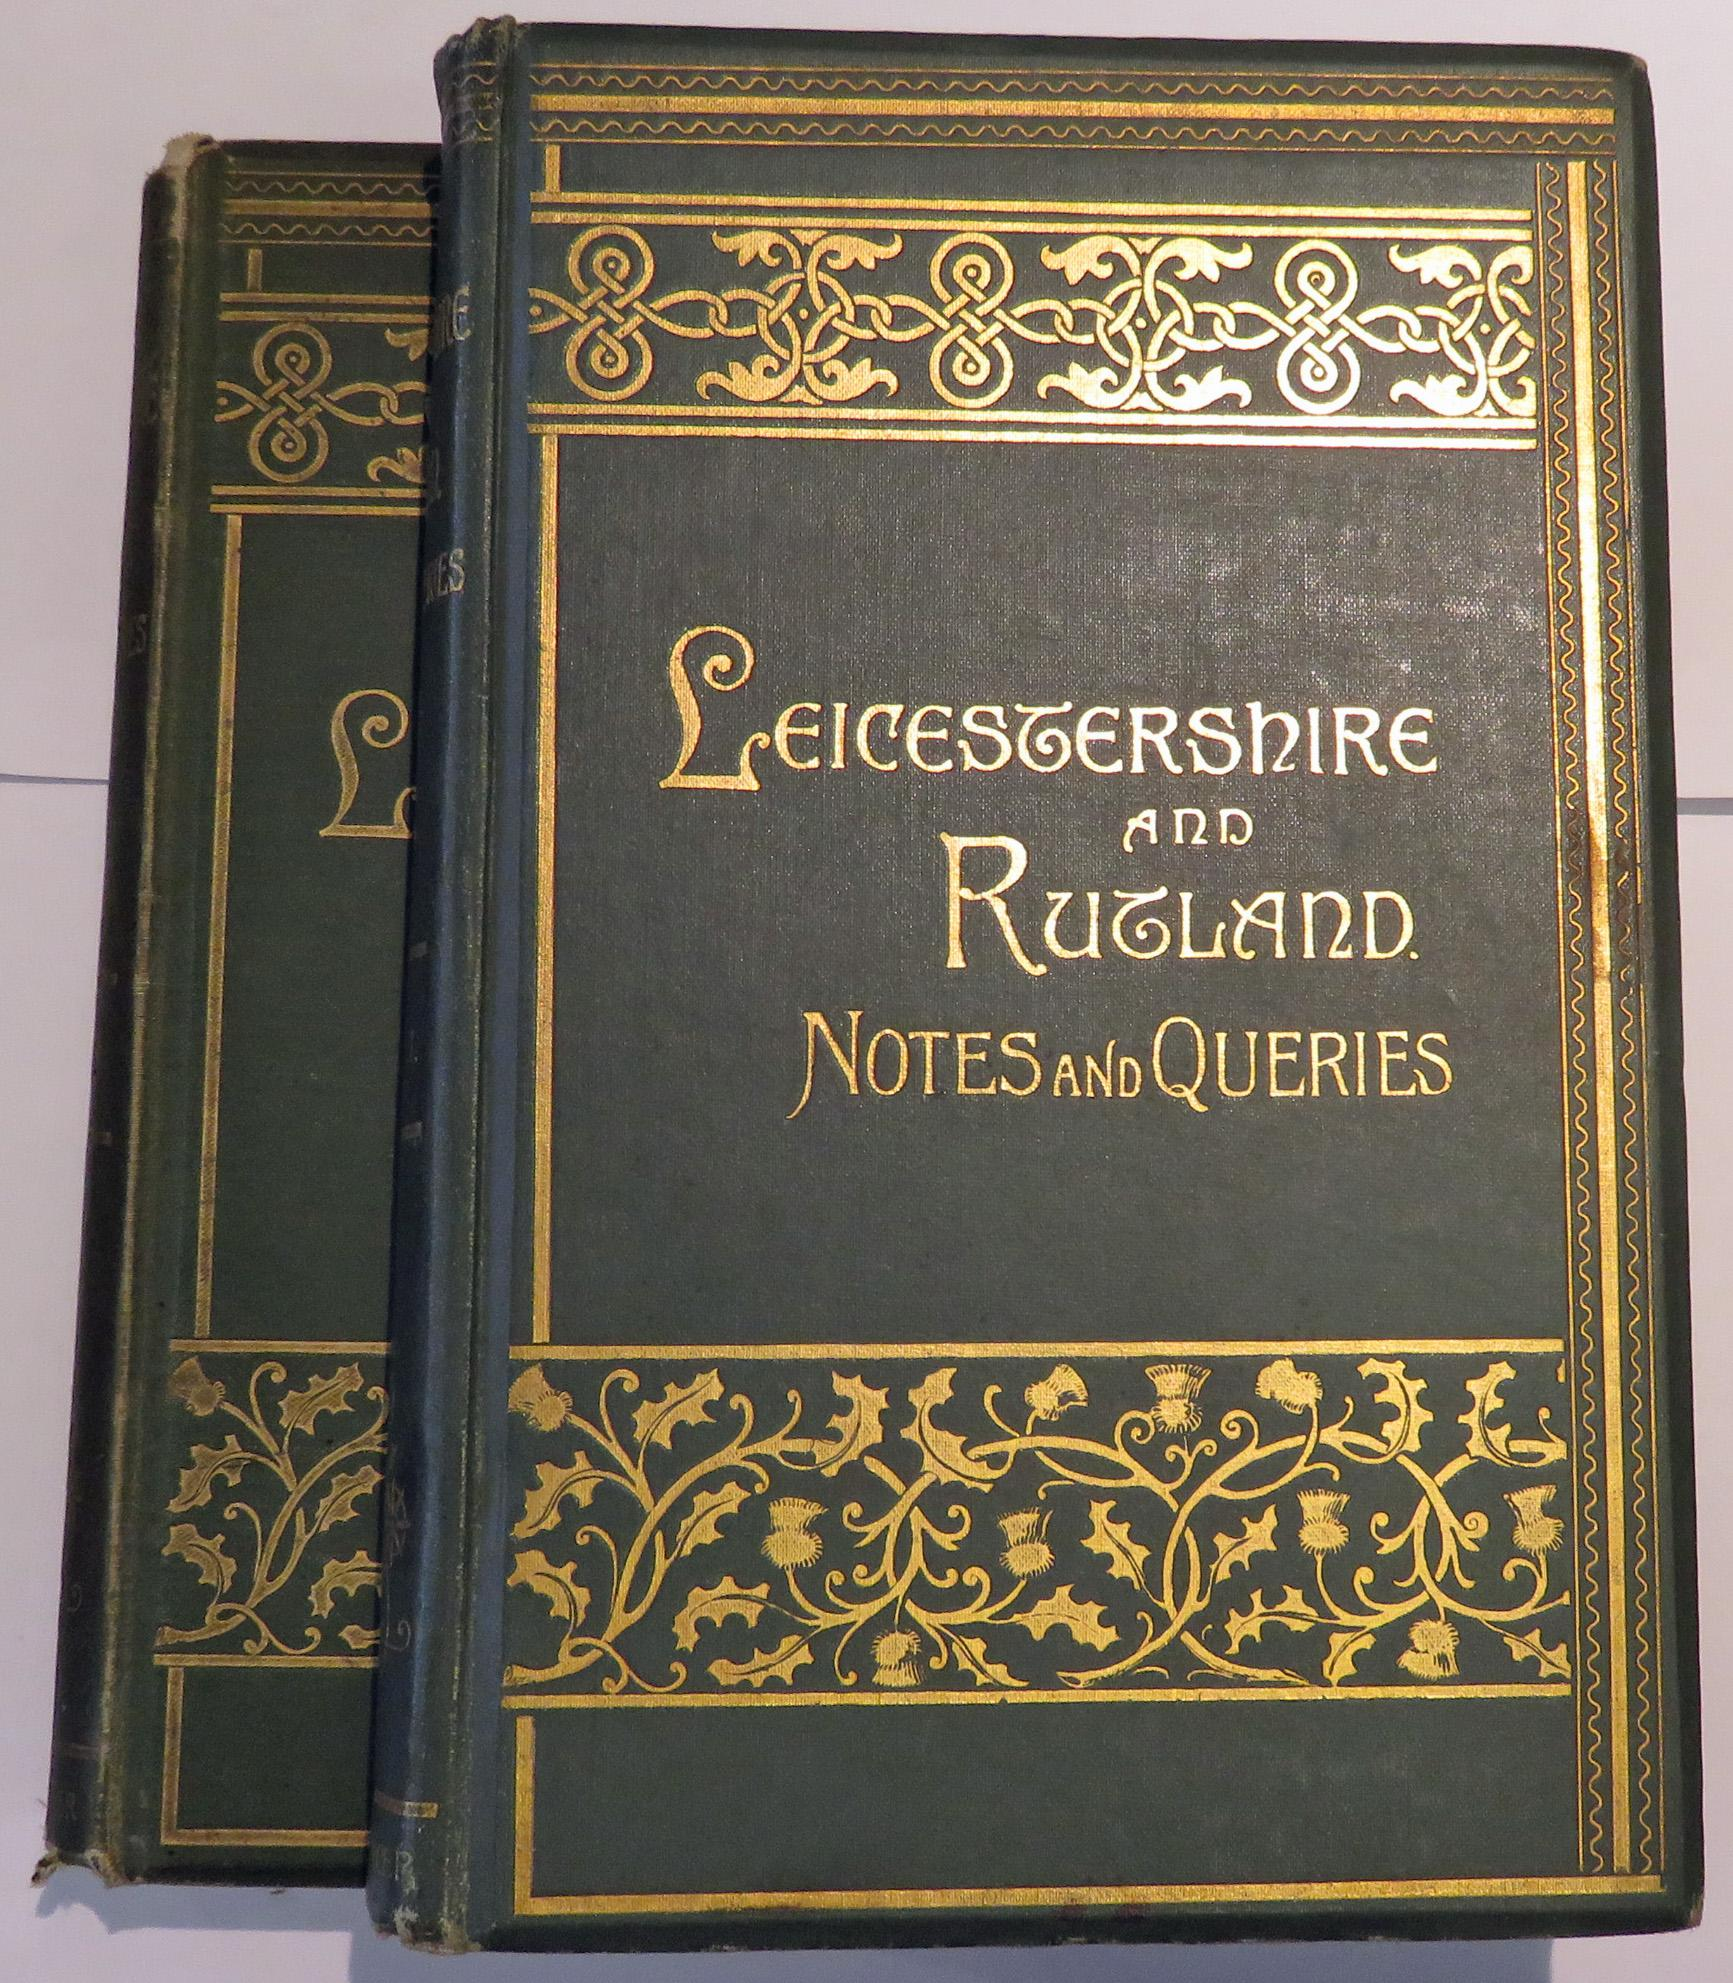 Leicestershire And Rutland Notes And Queries And Antiquarian Gleaner, An Illustrated Quarterly Magazine in two volumes